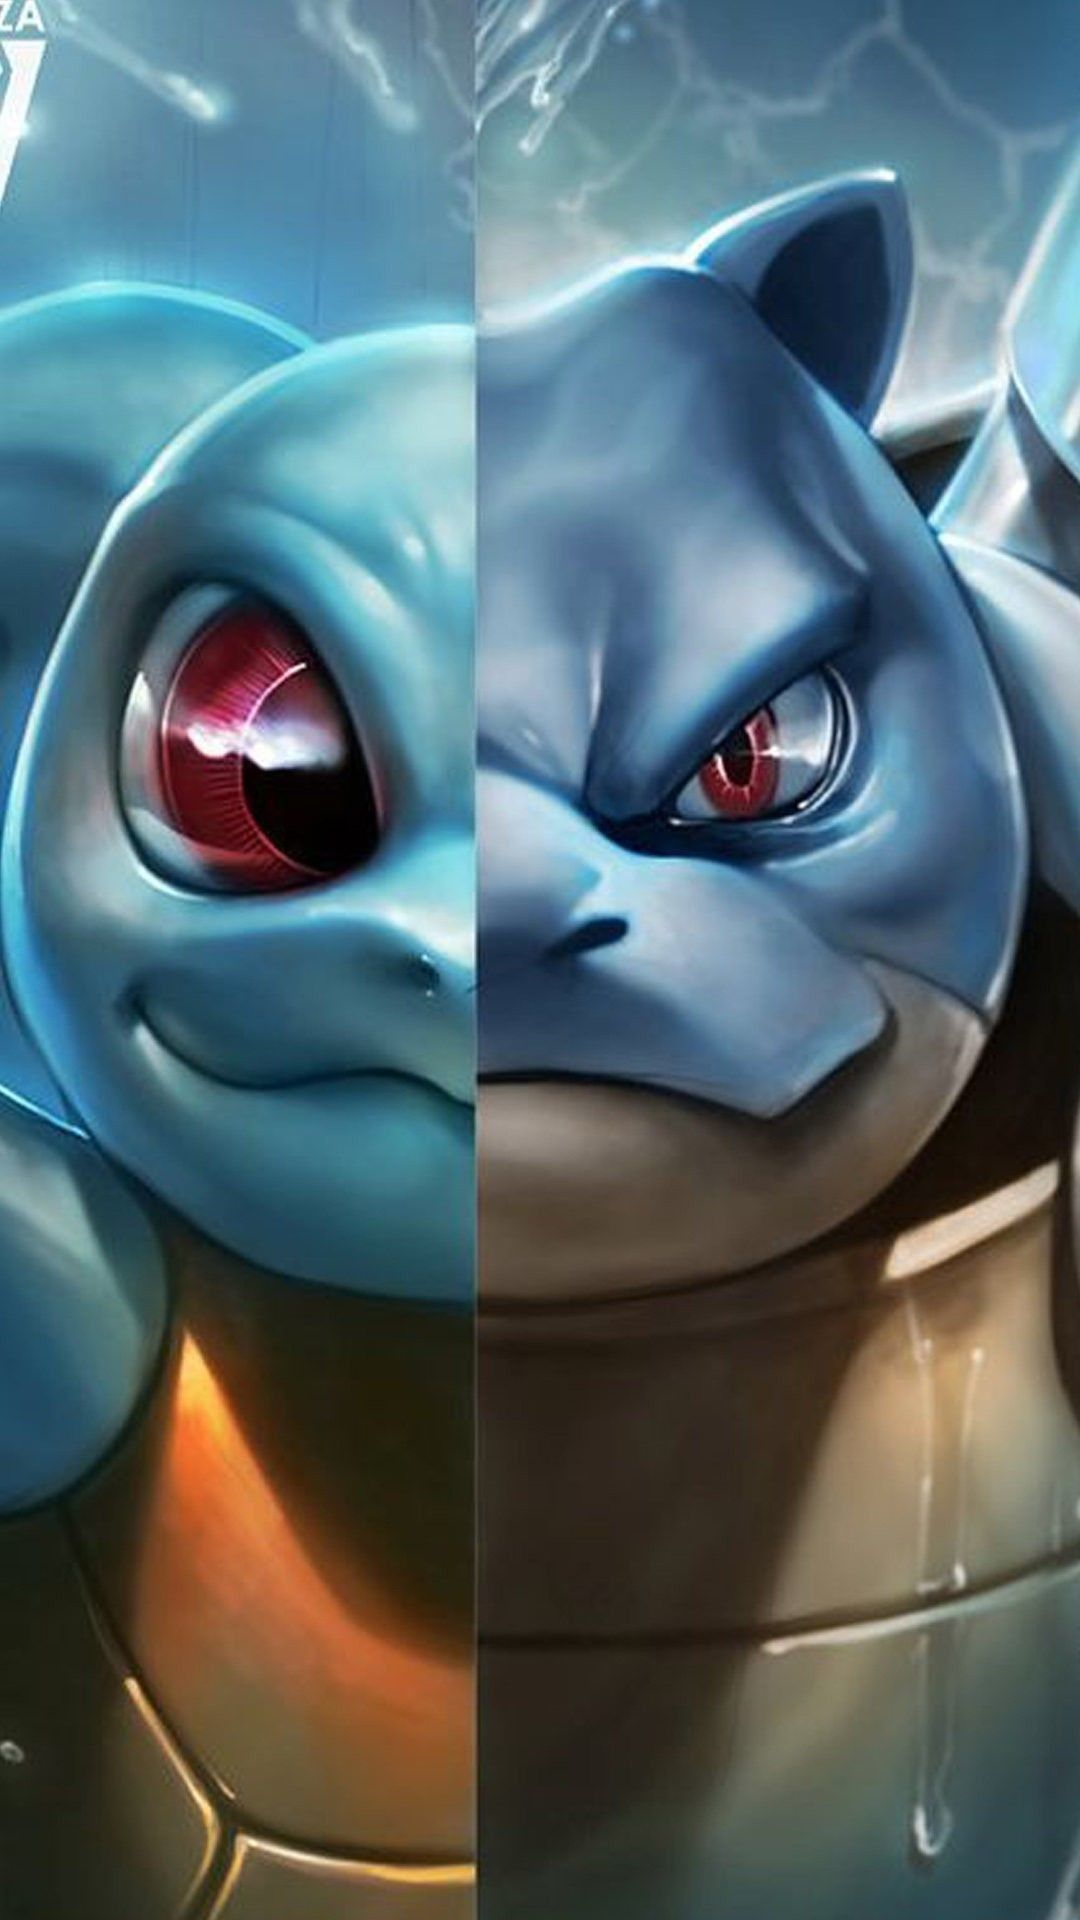 1080x1920 80+ Squirtle Wallpapers on WallpaperPlay